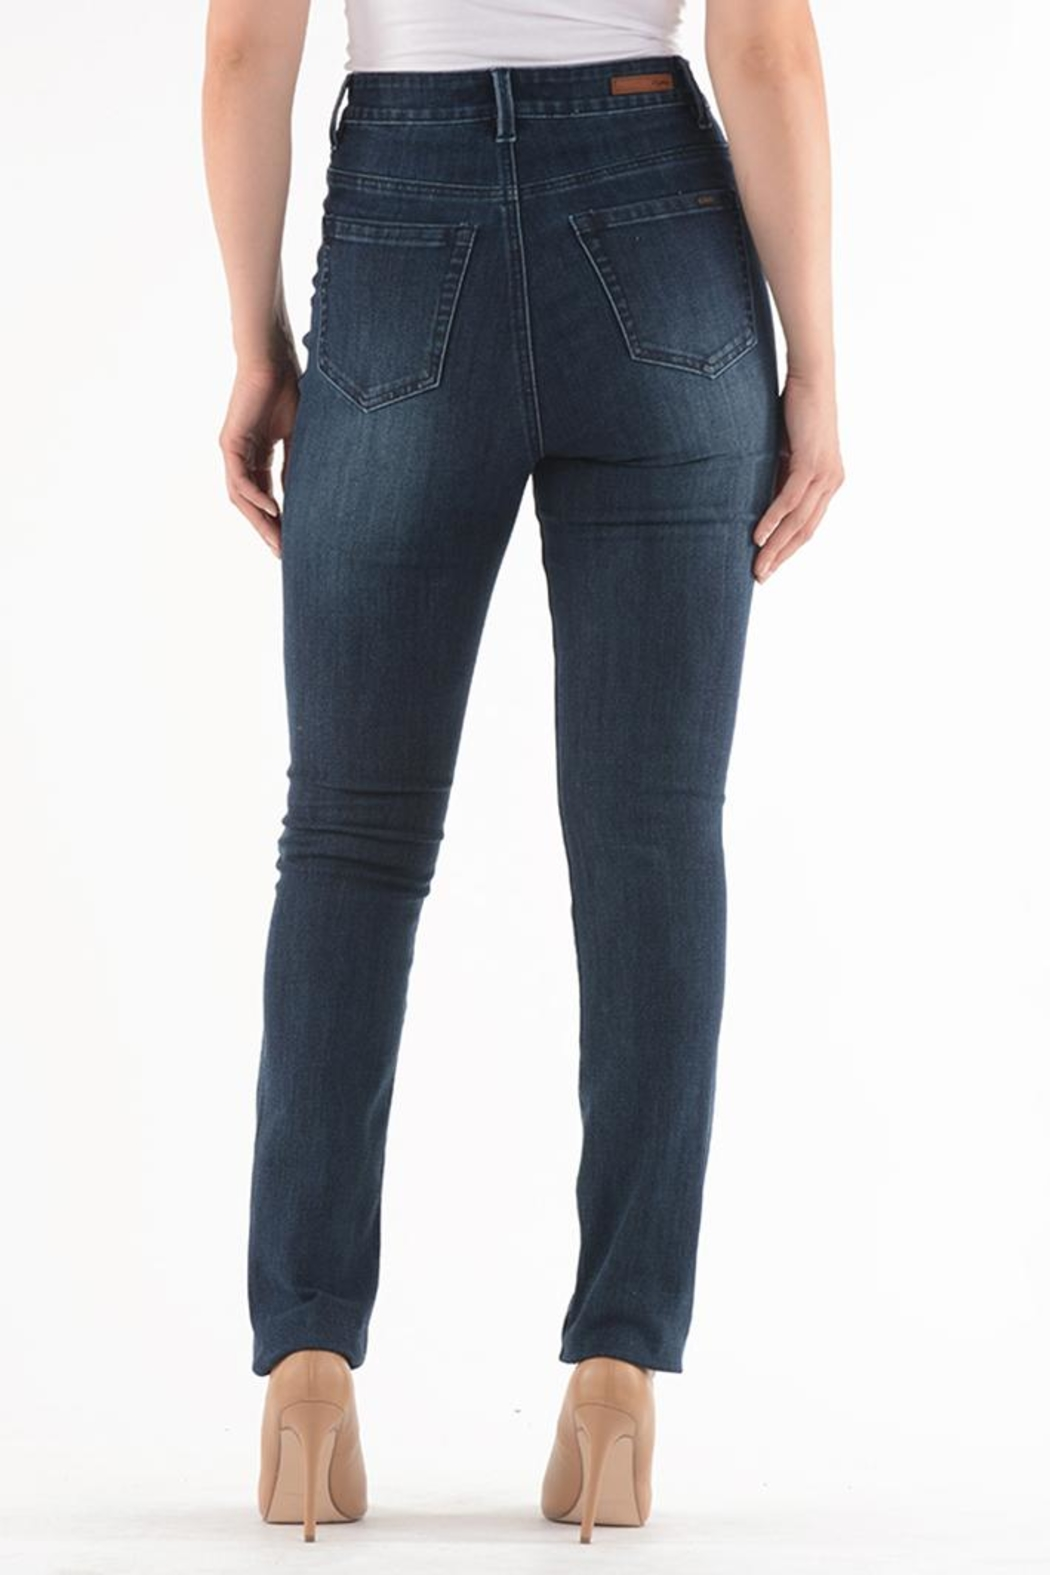 Lois Jeans Tina High-Rise Jean - Front Full Image